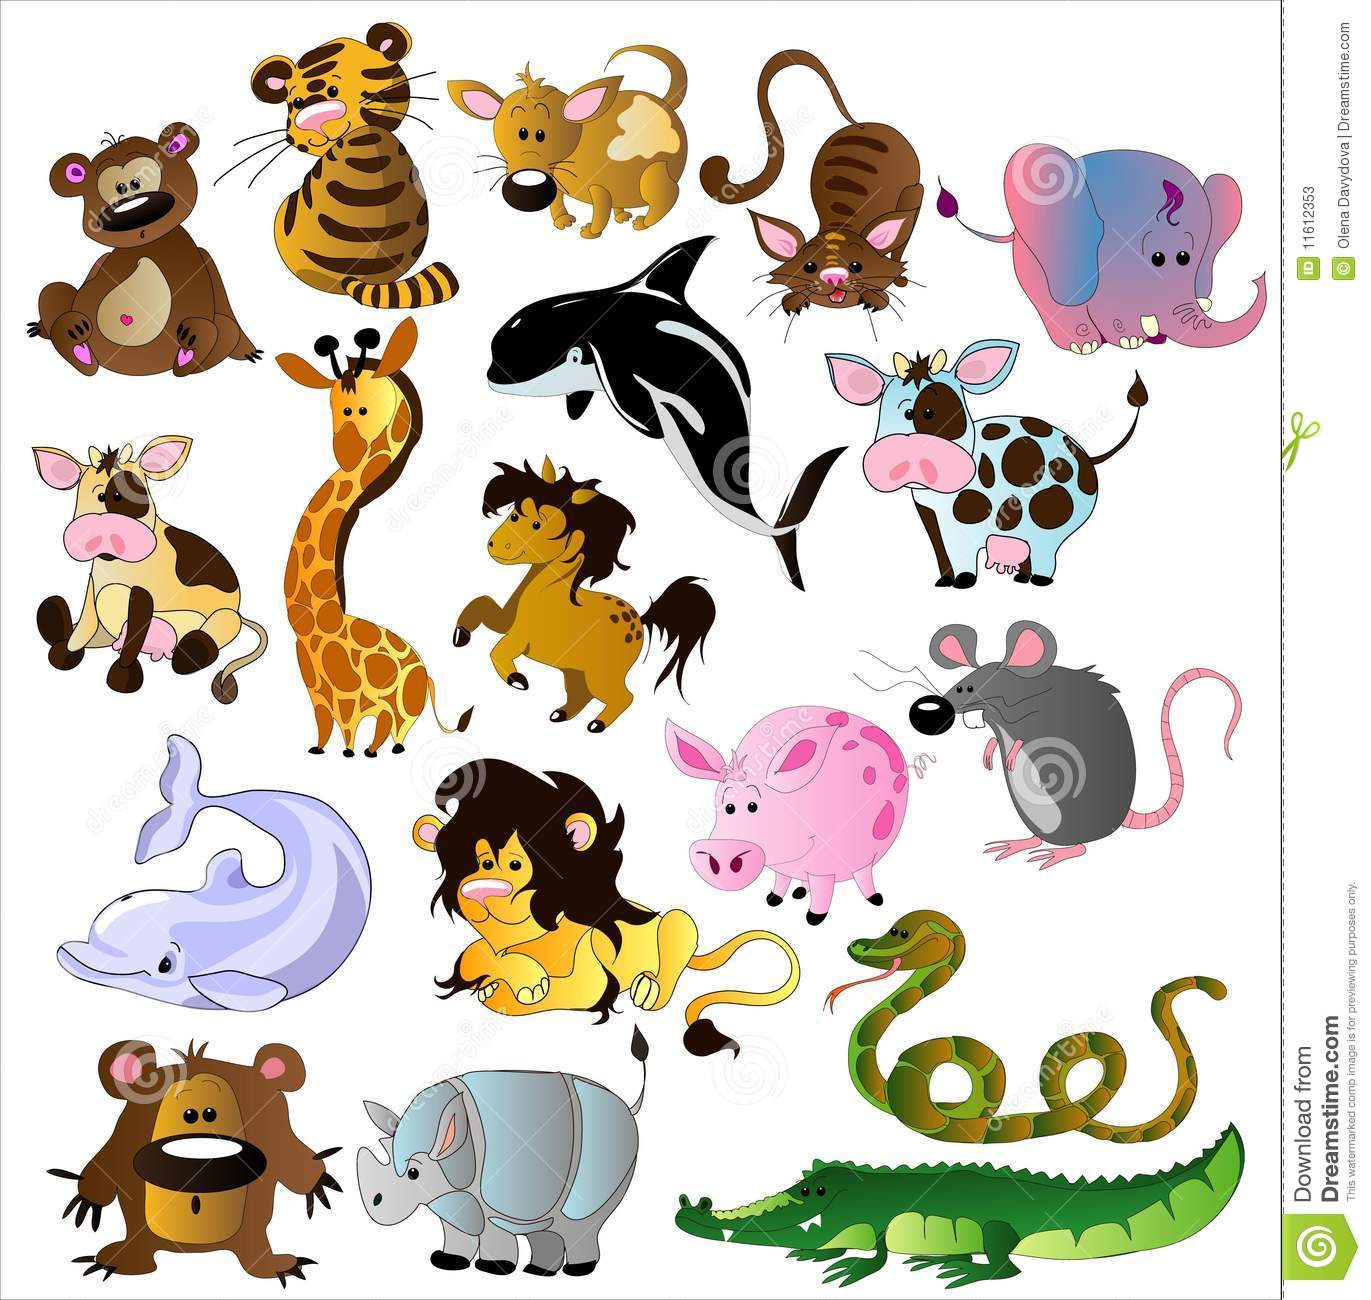 Cartoon Animals Vector Stock Photos - Image: 11612353